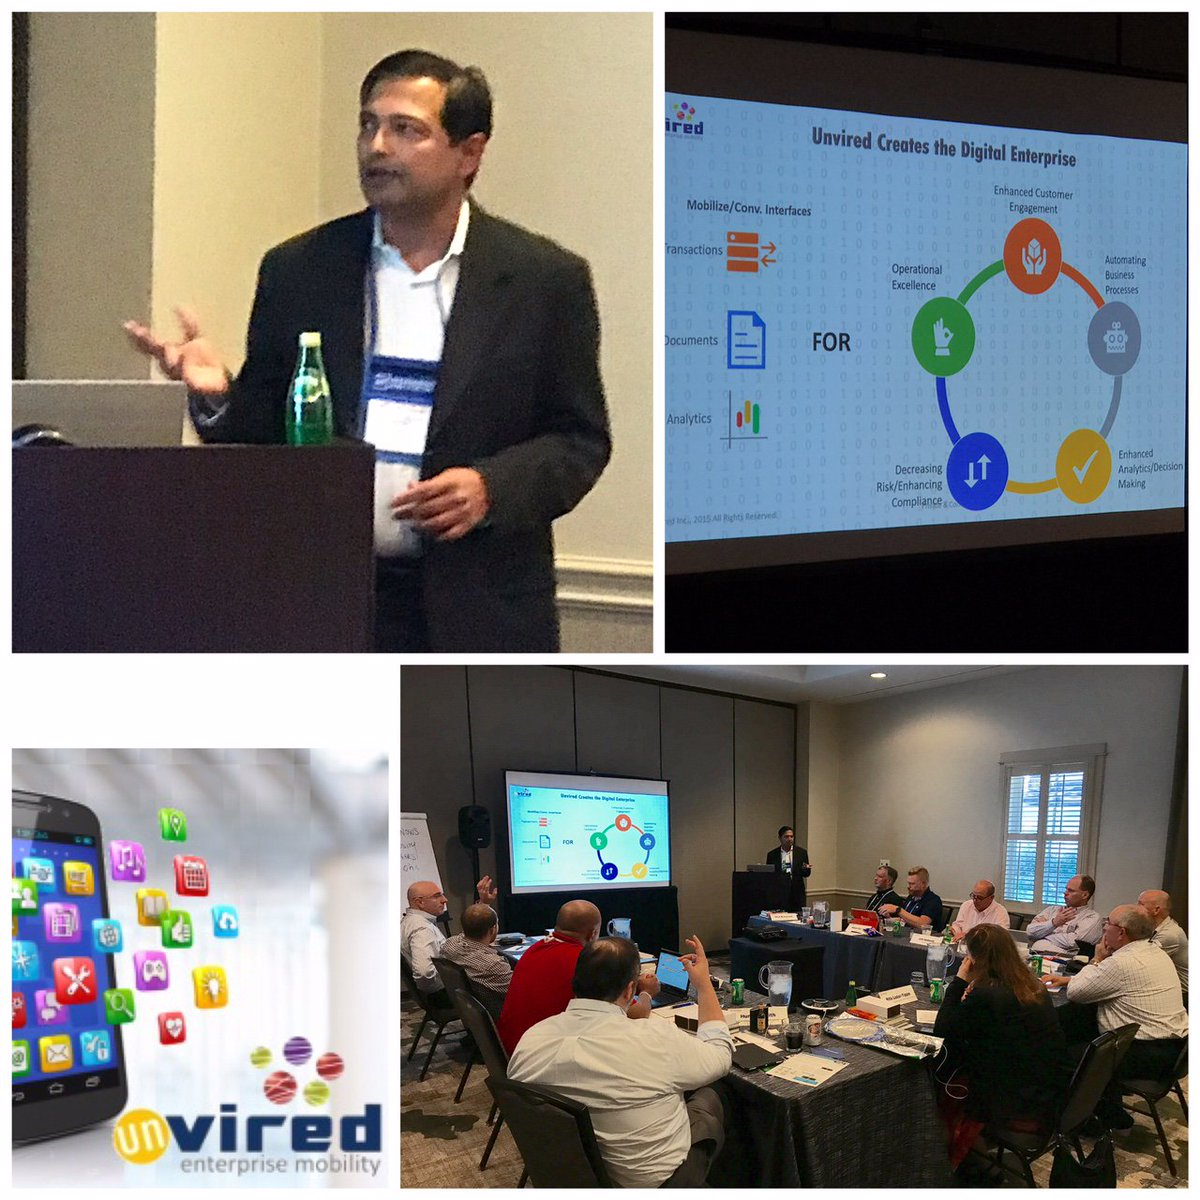 #Unvired CEO, Alok Pant speaking on #DigitalTransformation- #MobileApps &amp; #VirtualAssistants - at #MCIOF  #EnterpriseMobility #Chatbots<br>http://pic.twitter.com/Um0e9OZJsj